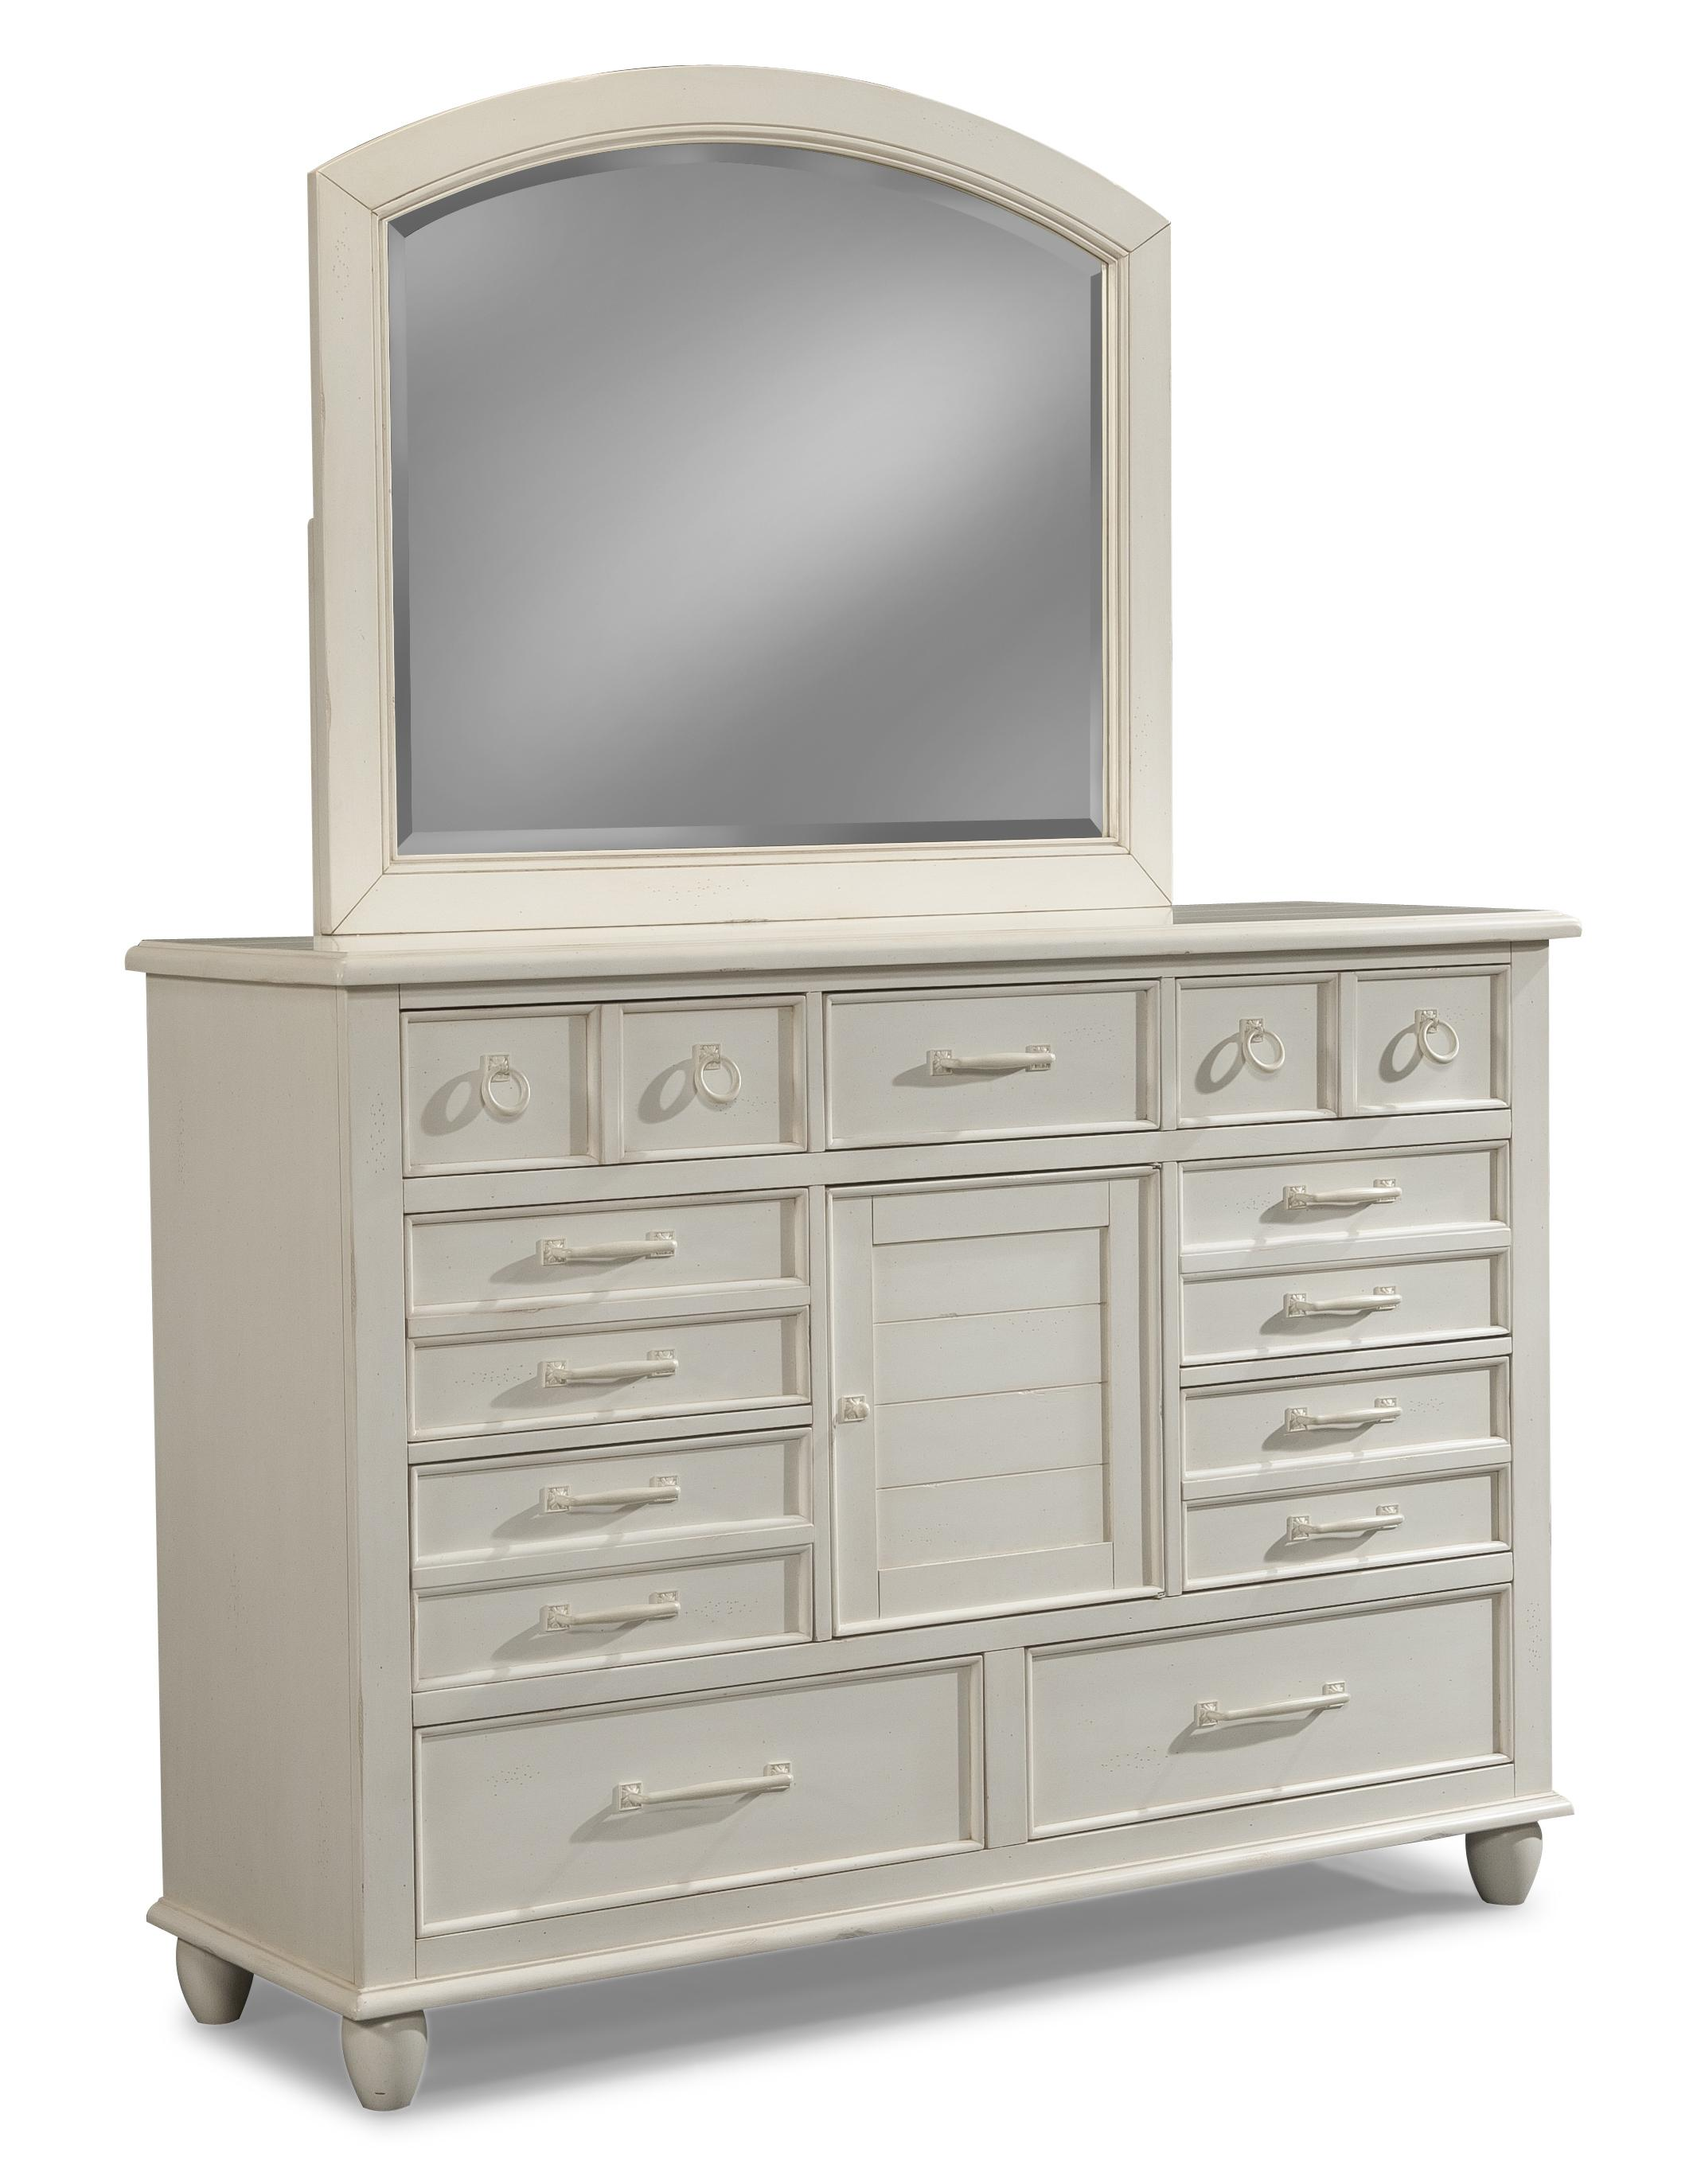 Easton Collection Sea Breeze Dresser and Mirror Set - Item Number: 424-650 DRES+660 MIRR